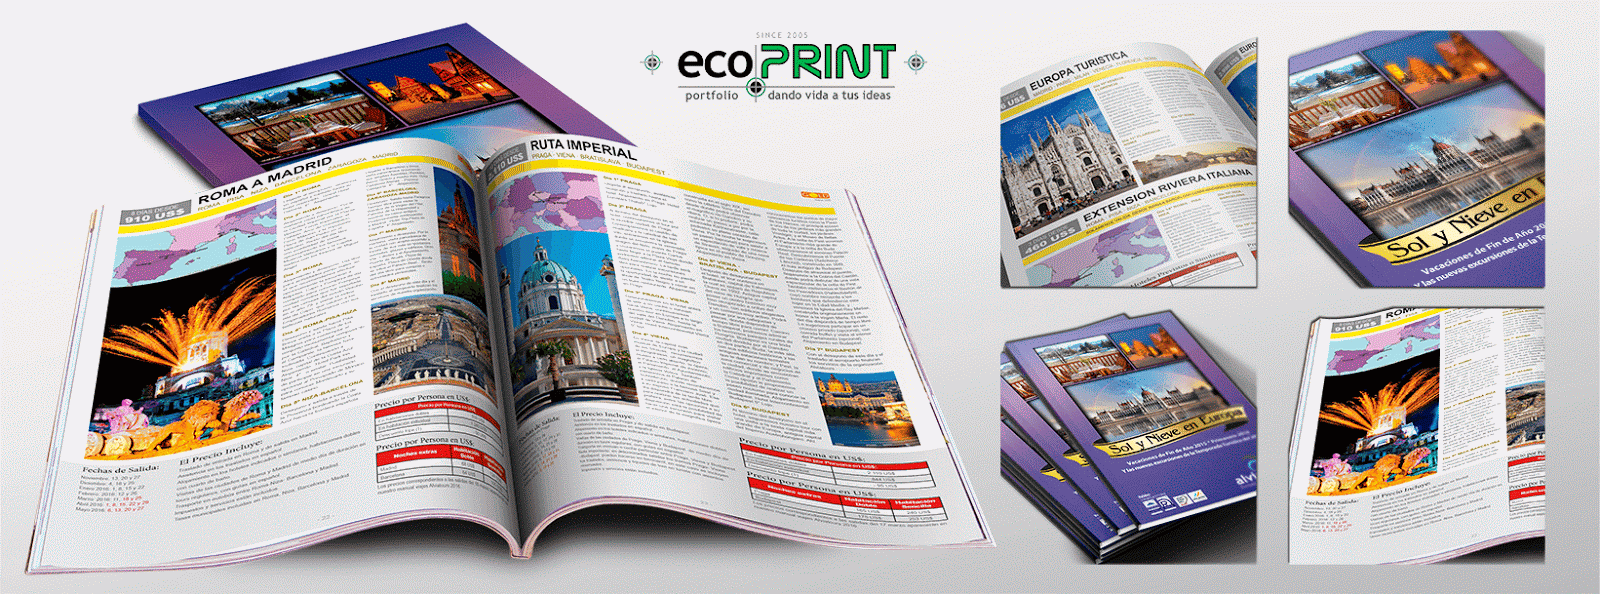 Revista Sol y Nieve_by ecoPRINT